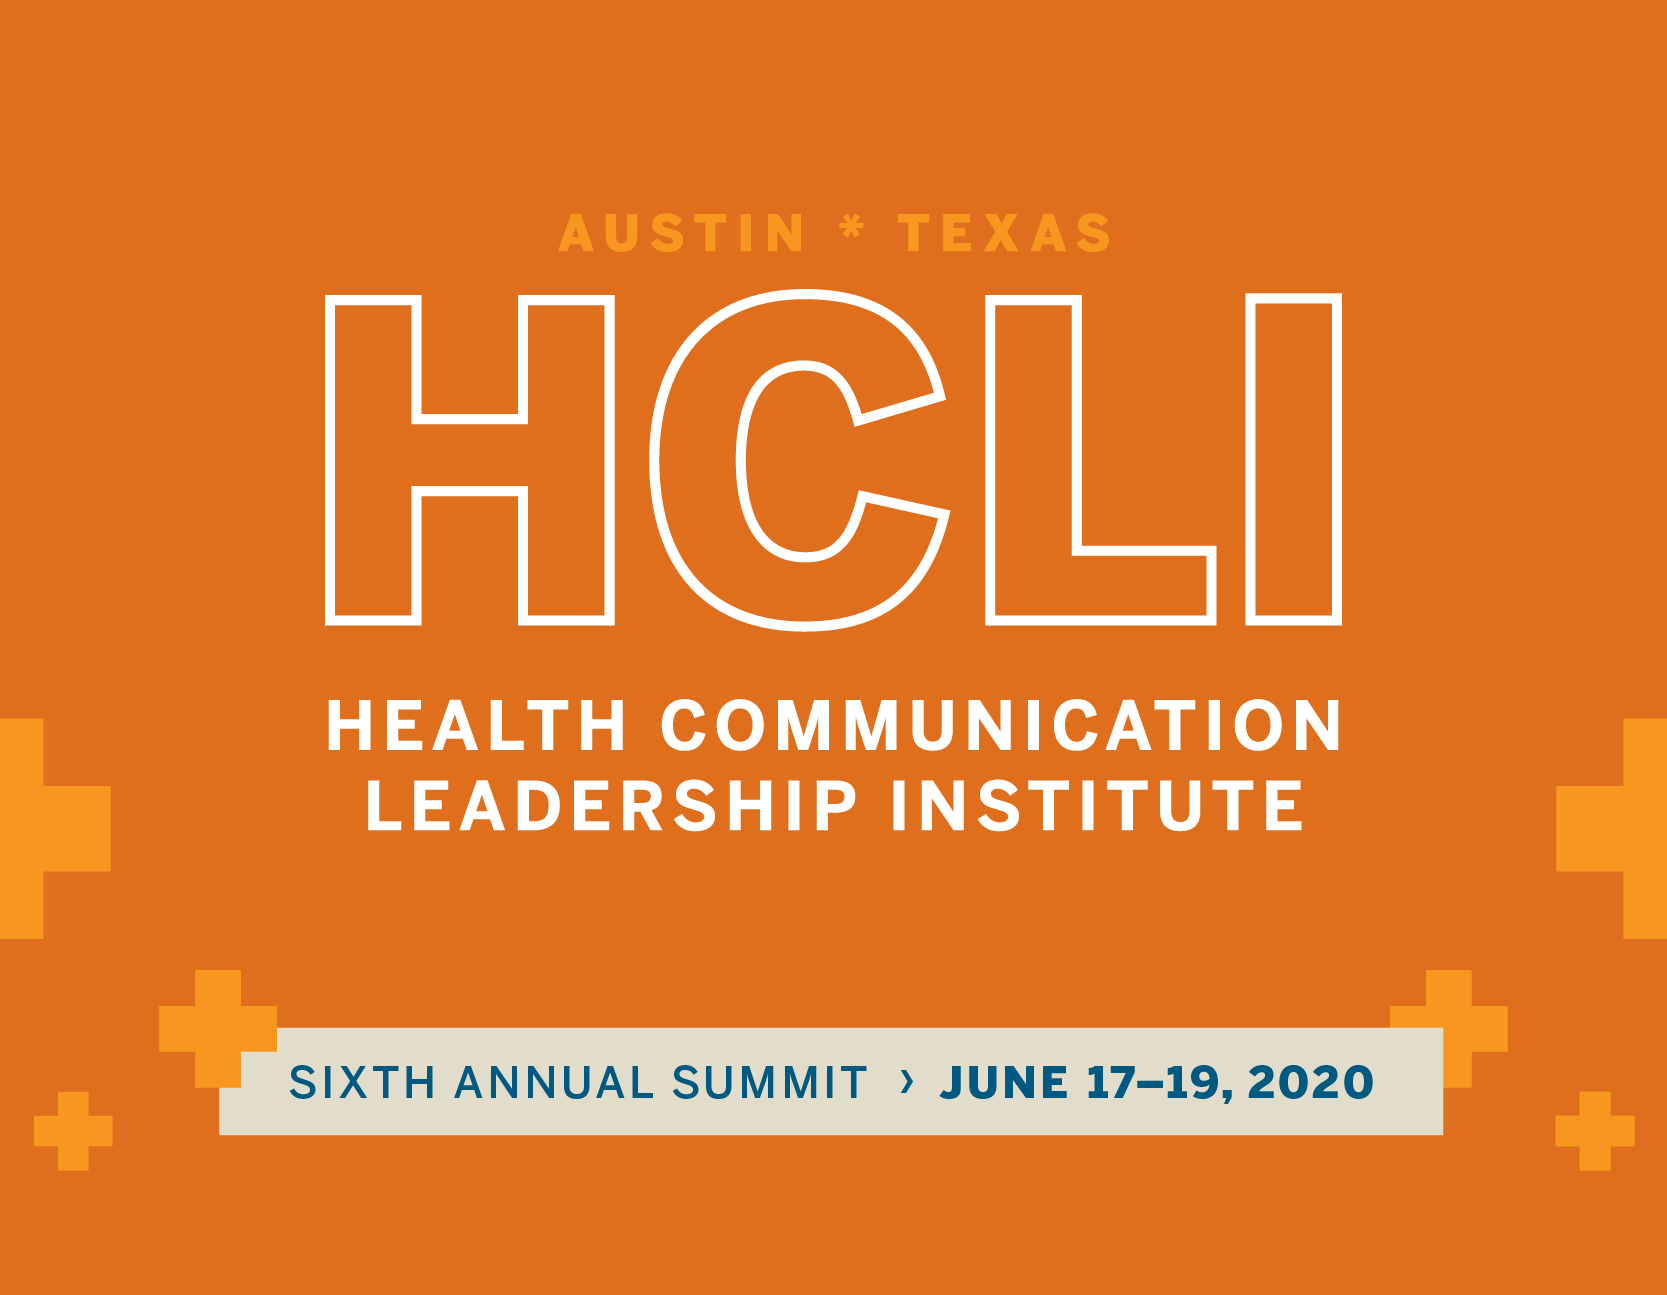 Save the date for the Health Communication Leadership Institute; June 17-19, 2020 at The University of Texas at Austin